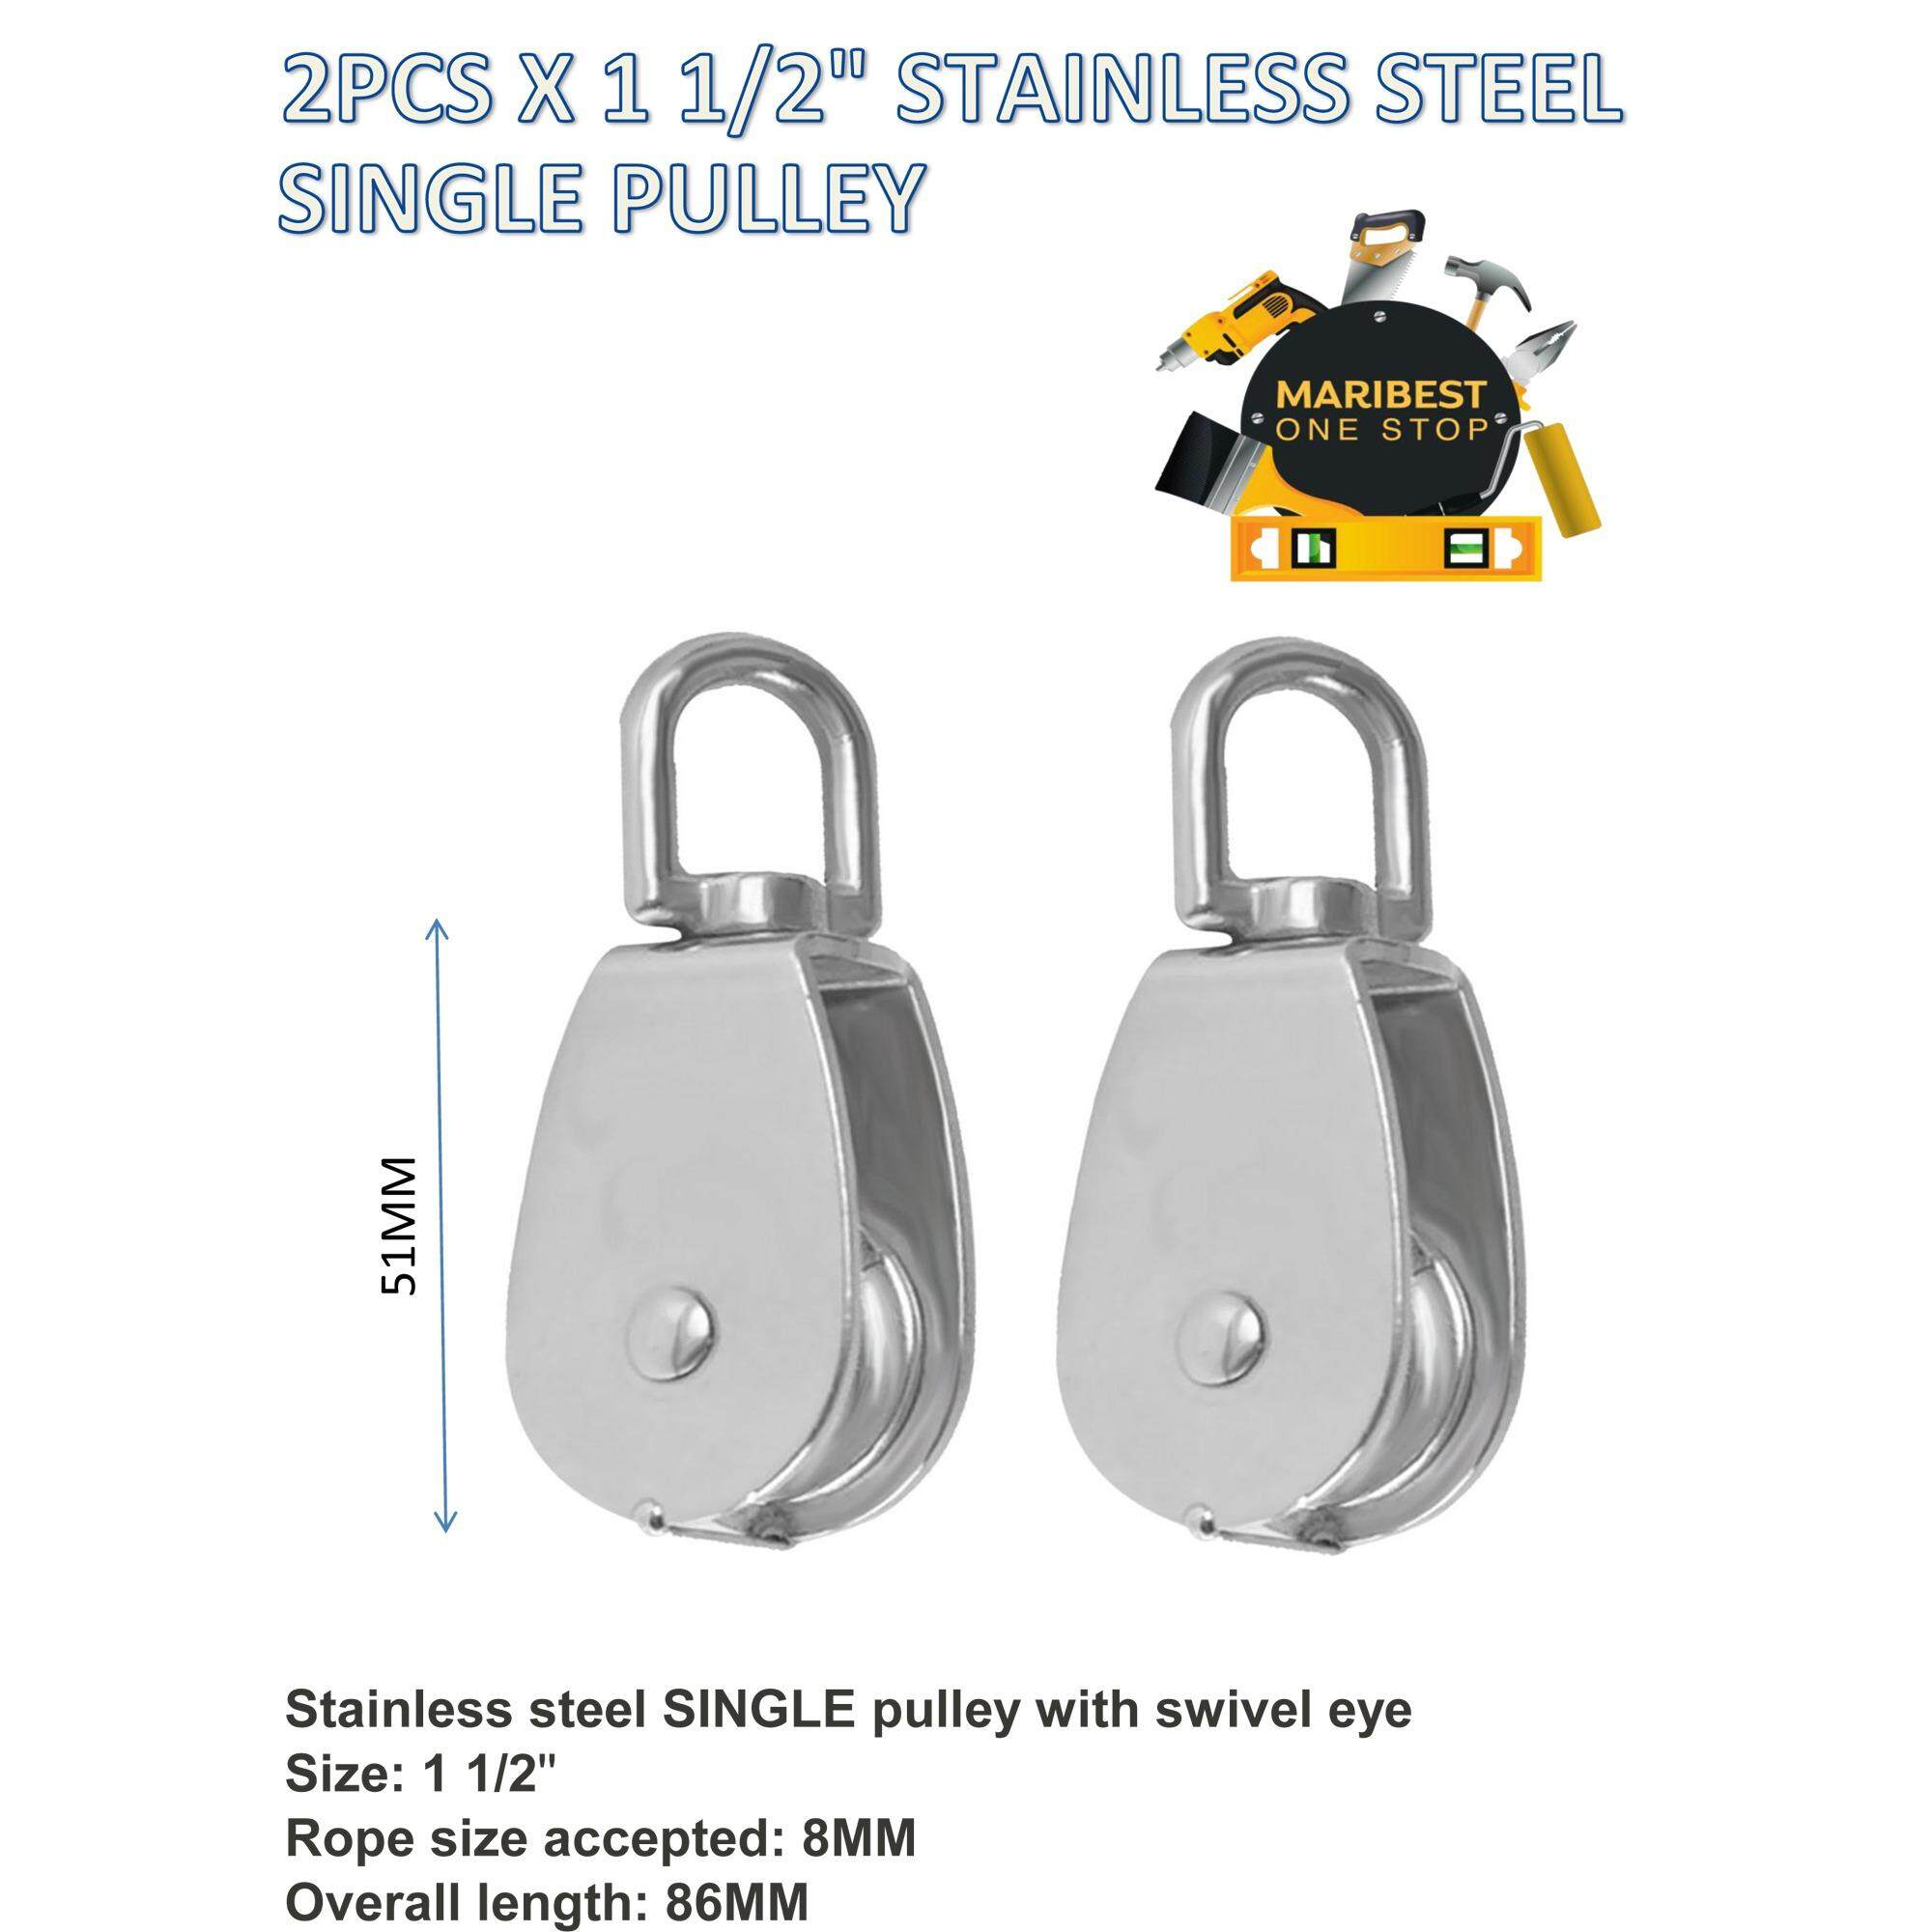 Buy 2PCS X 1 5 STAINLESS STEEL SINGLE PULLEY Malaysia